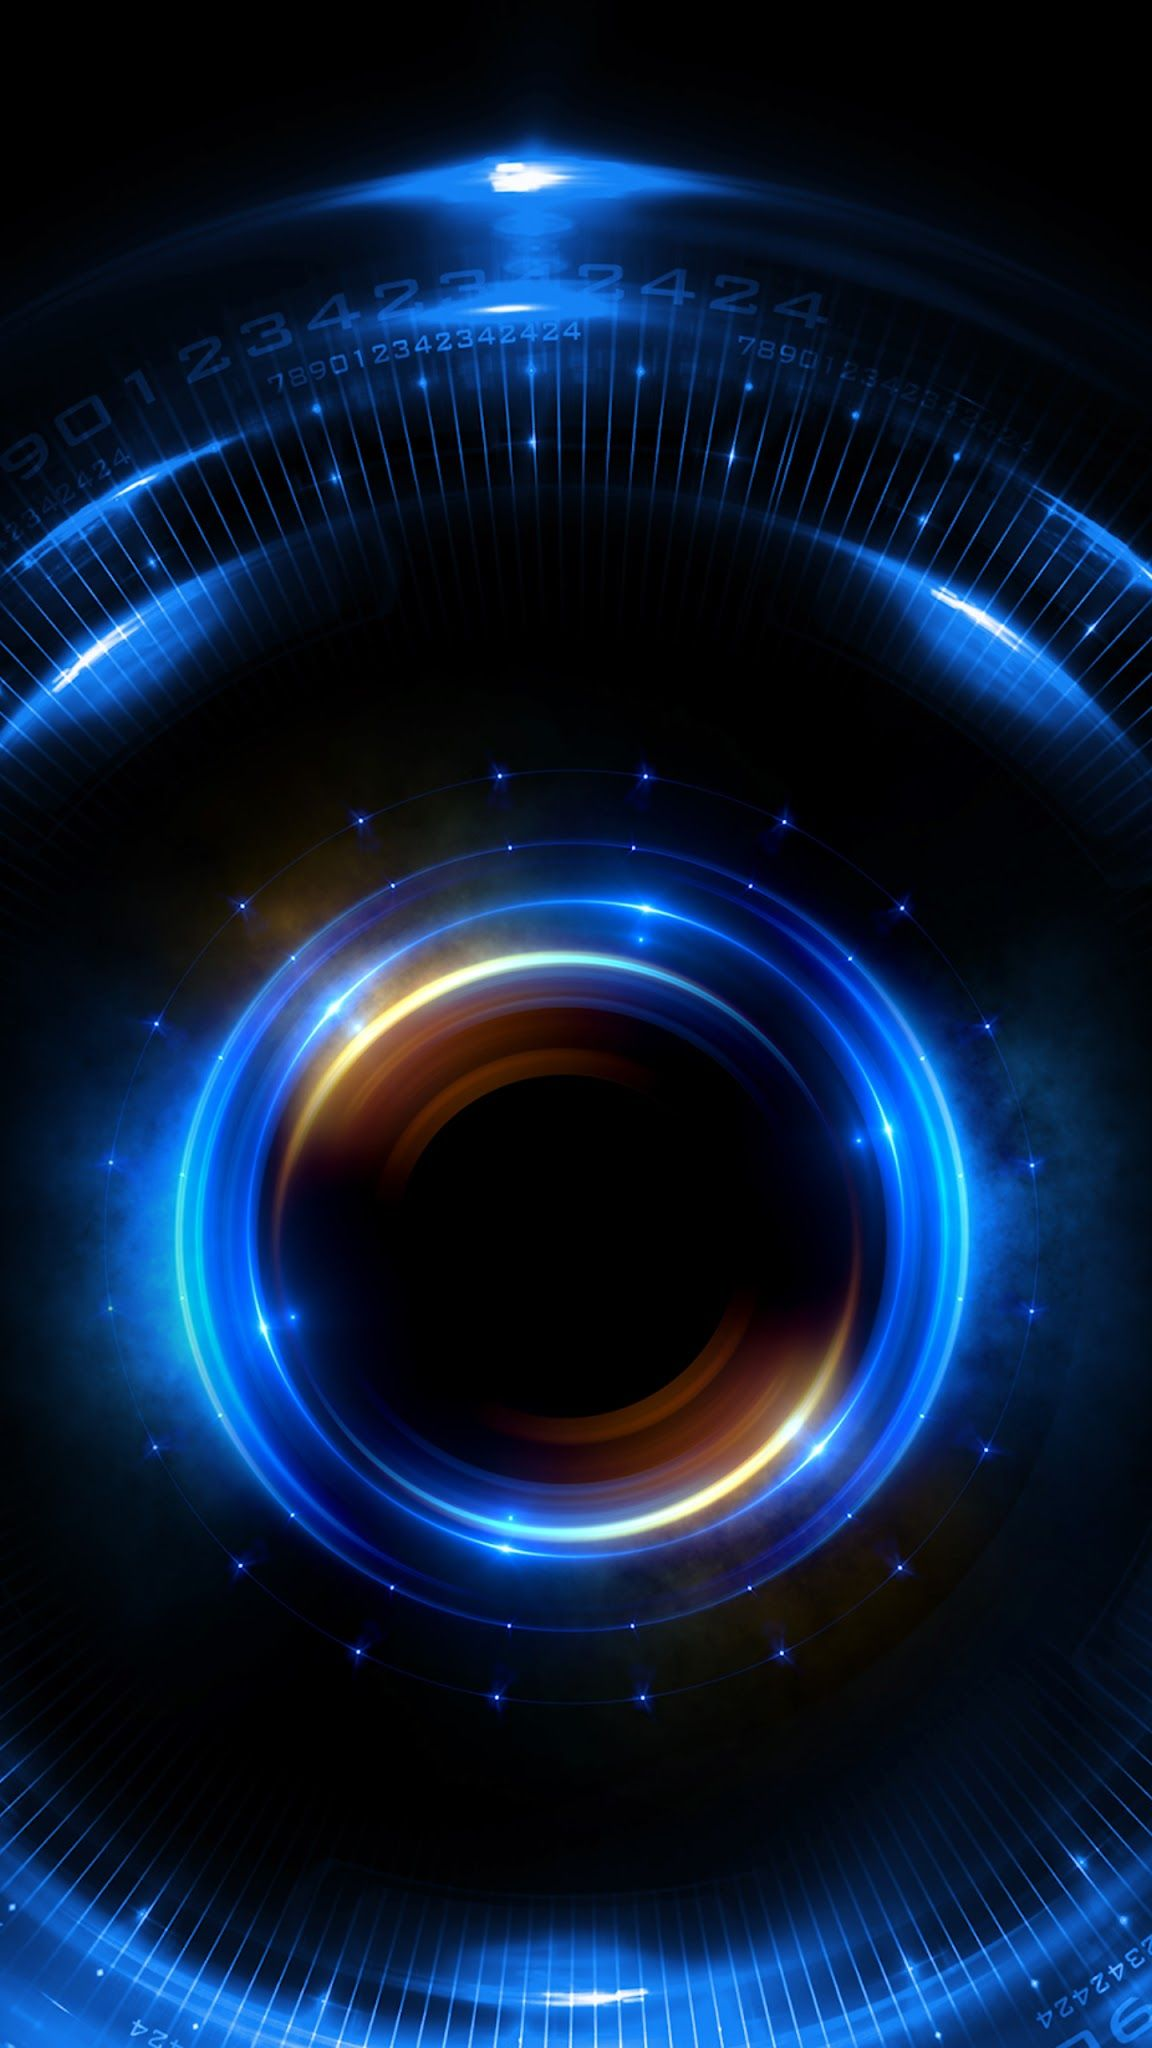 Pin On Amoled Wallpapers Abstract Wallpapers